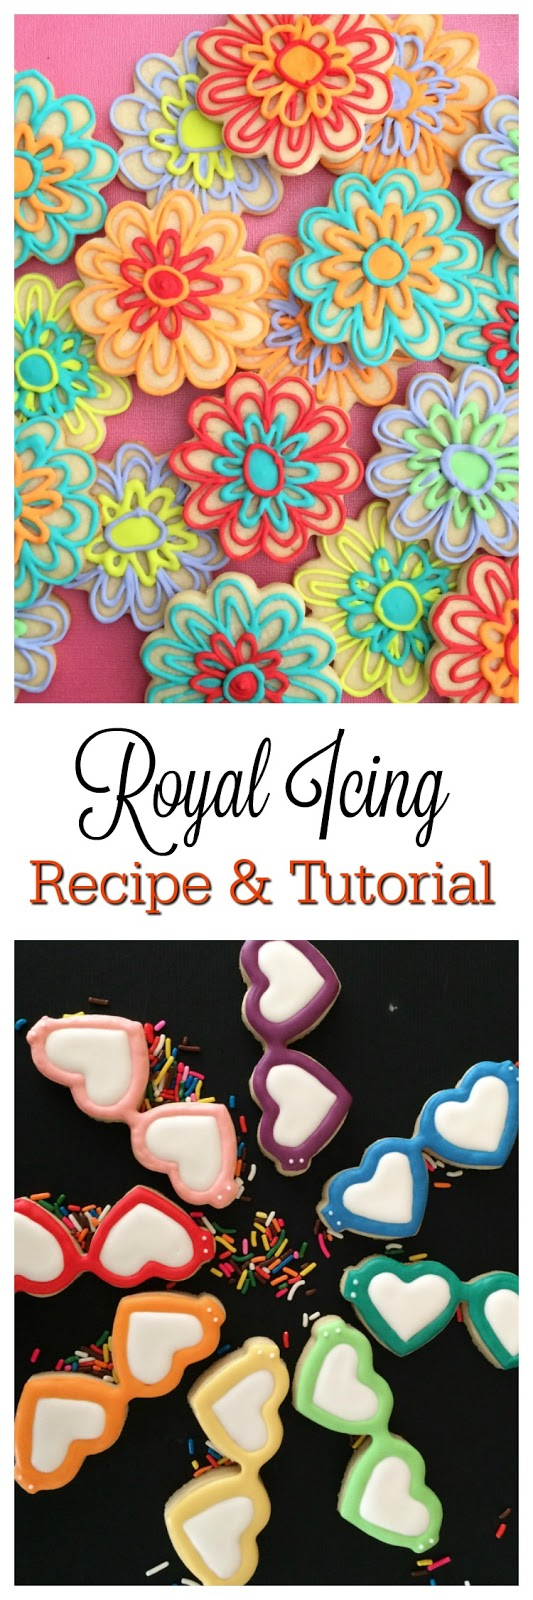 royal icing recipe and video tutorial